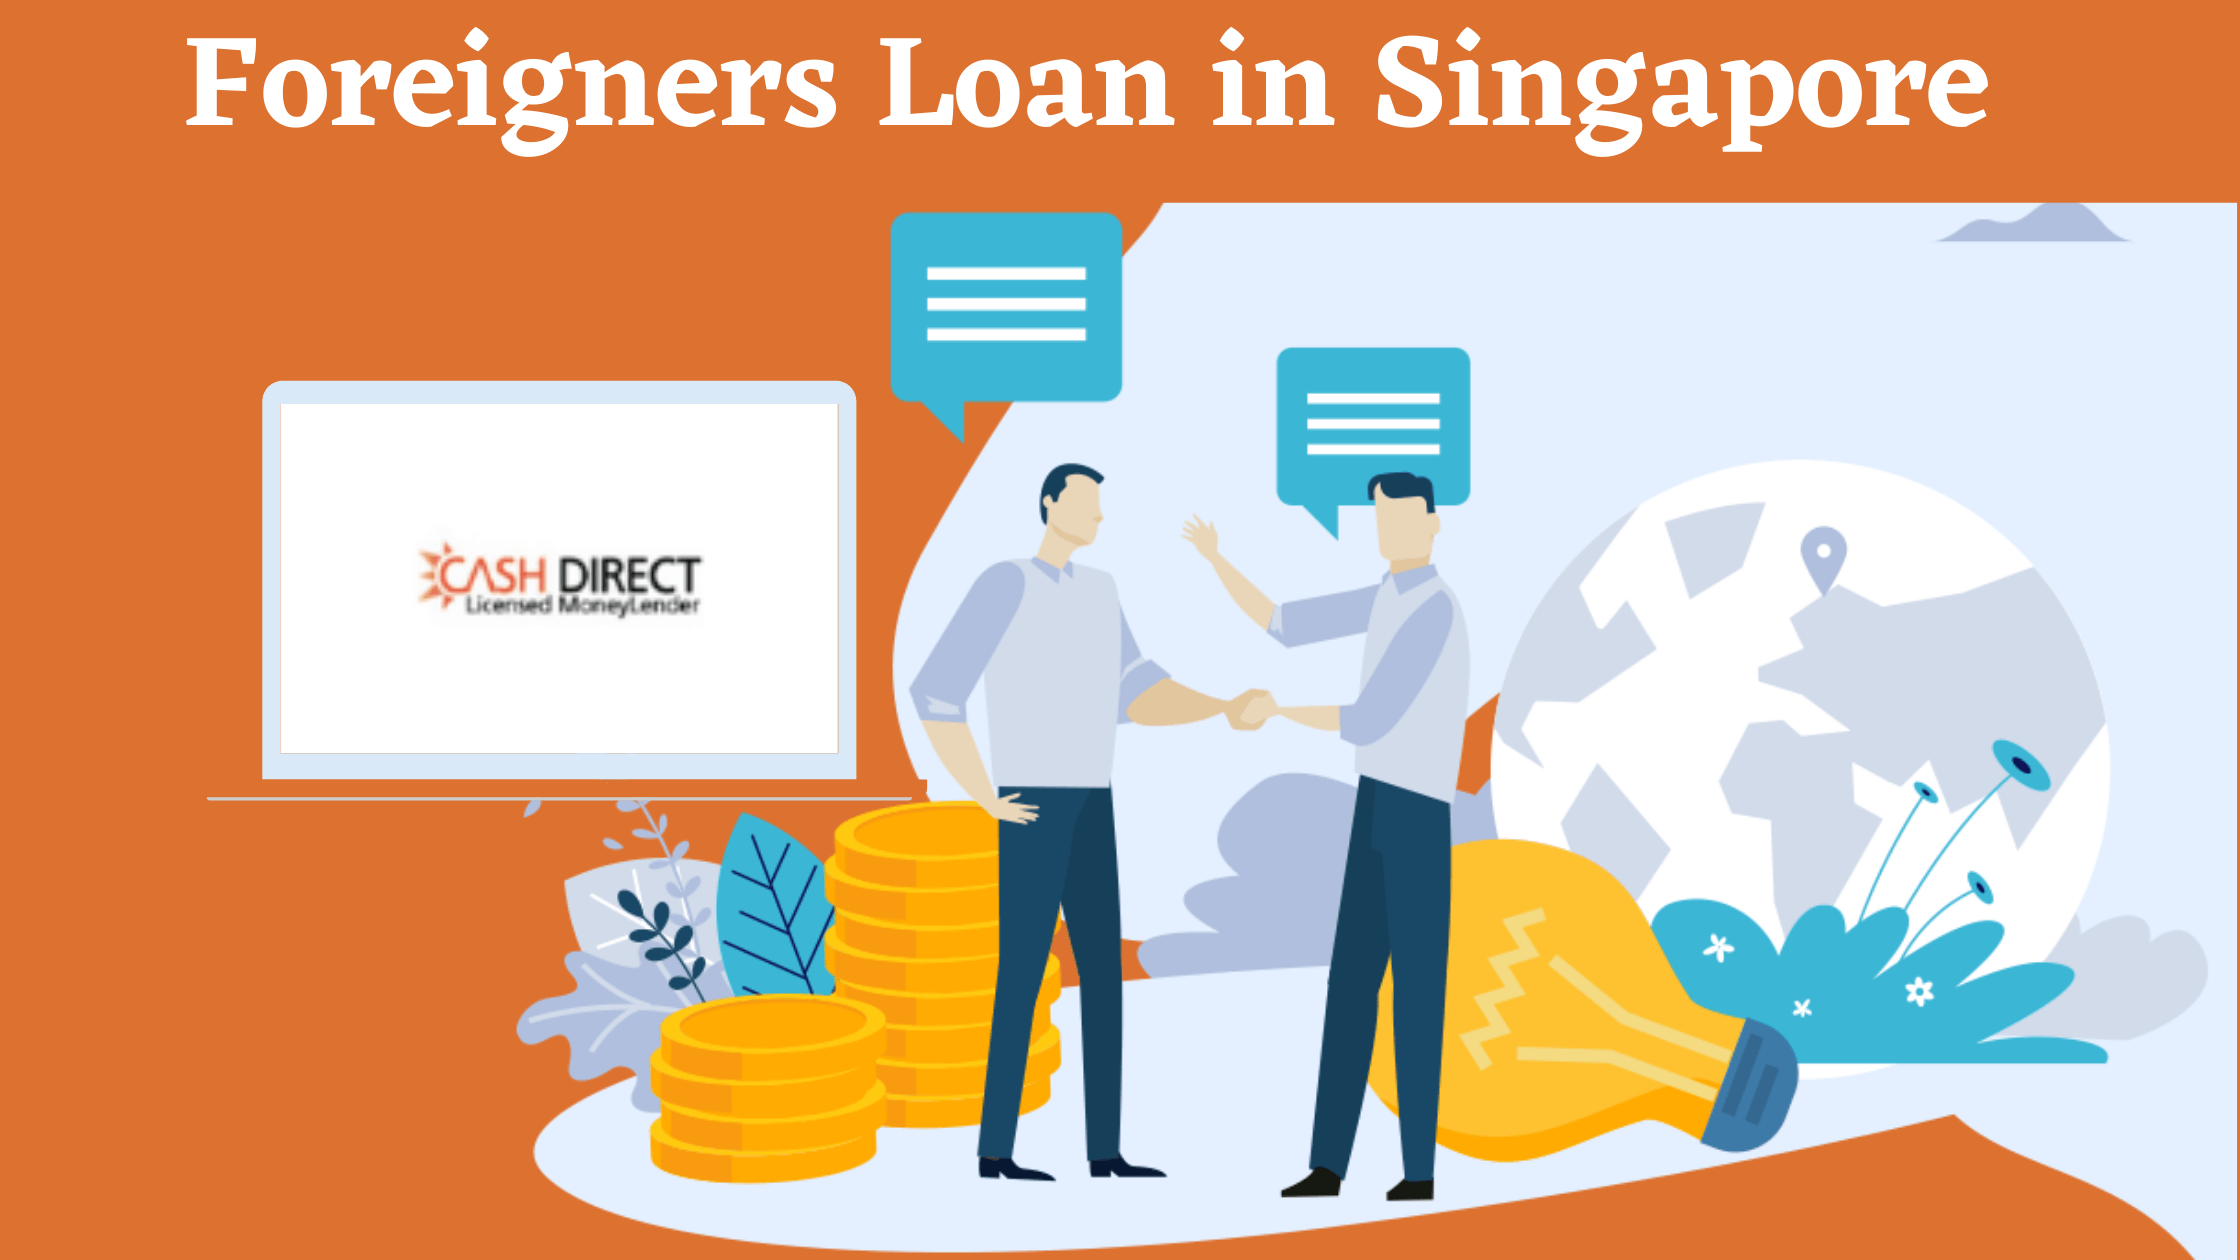 Foreigners Loan in Singapore